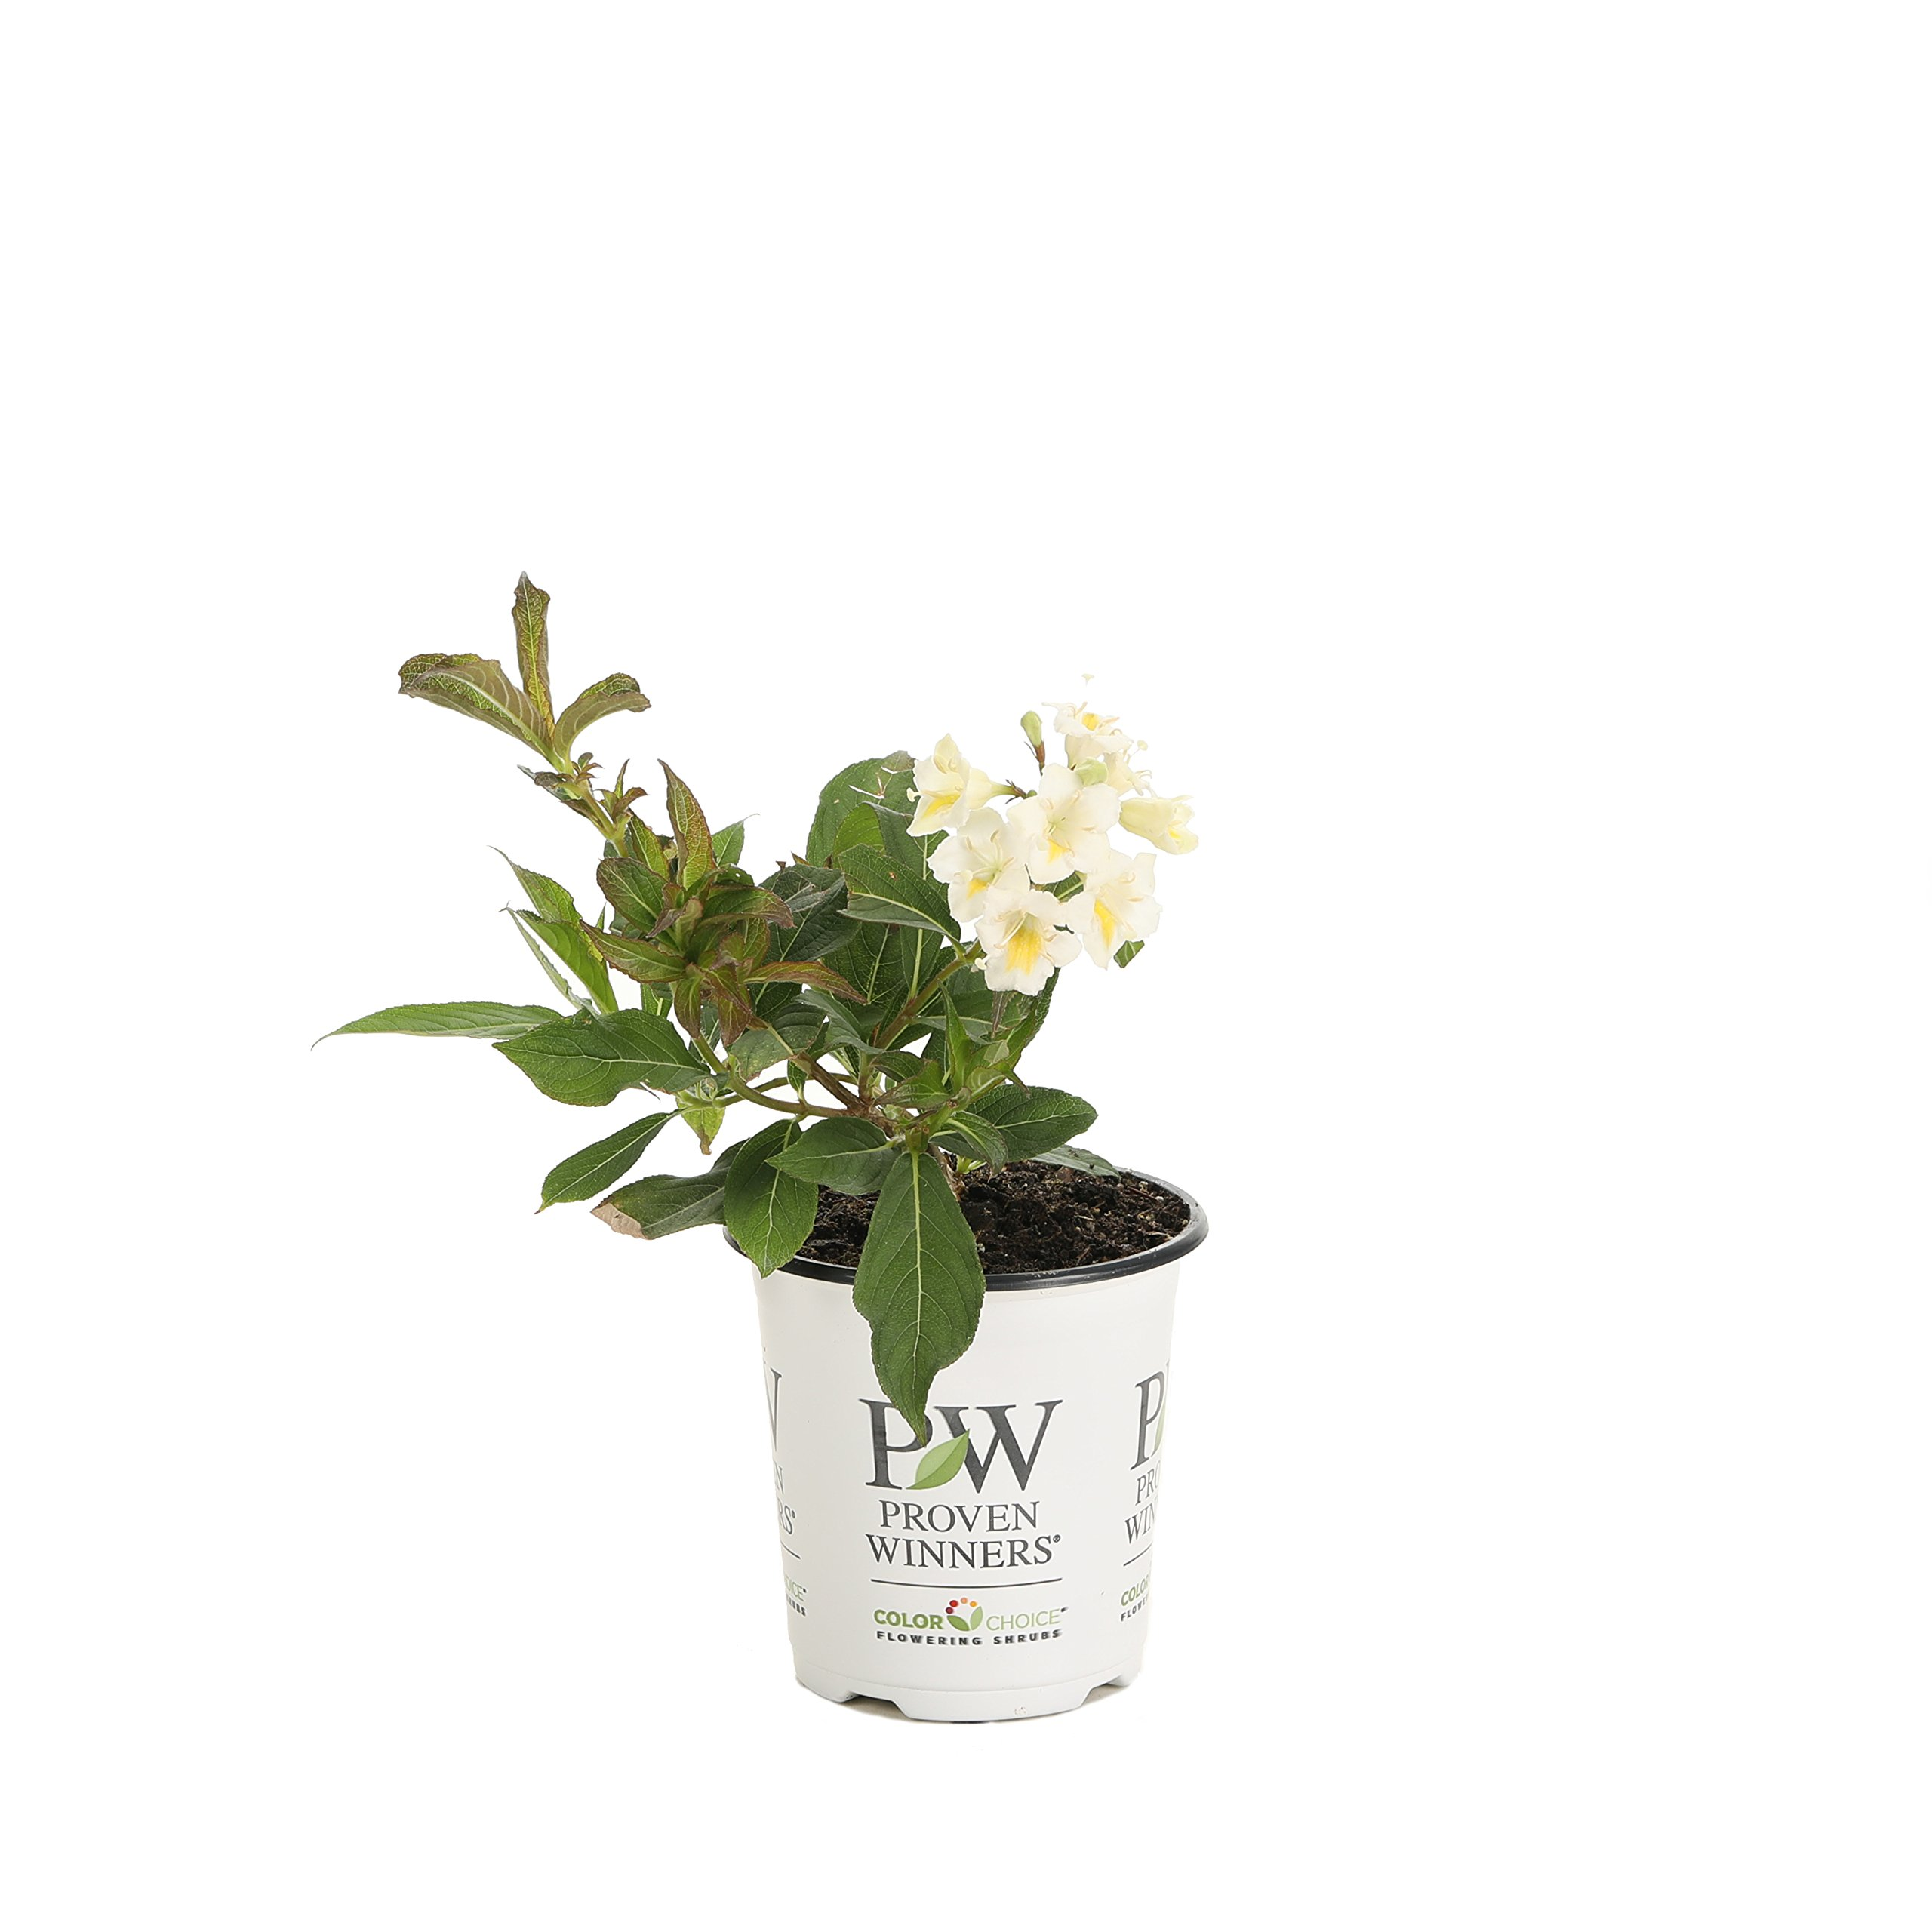 Czechmark Sunny Side Up (Weigela) Live Shrub, White and Yellow Flowers, 4.5 in. Quart